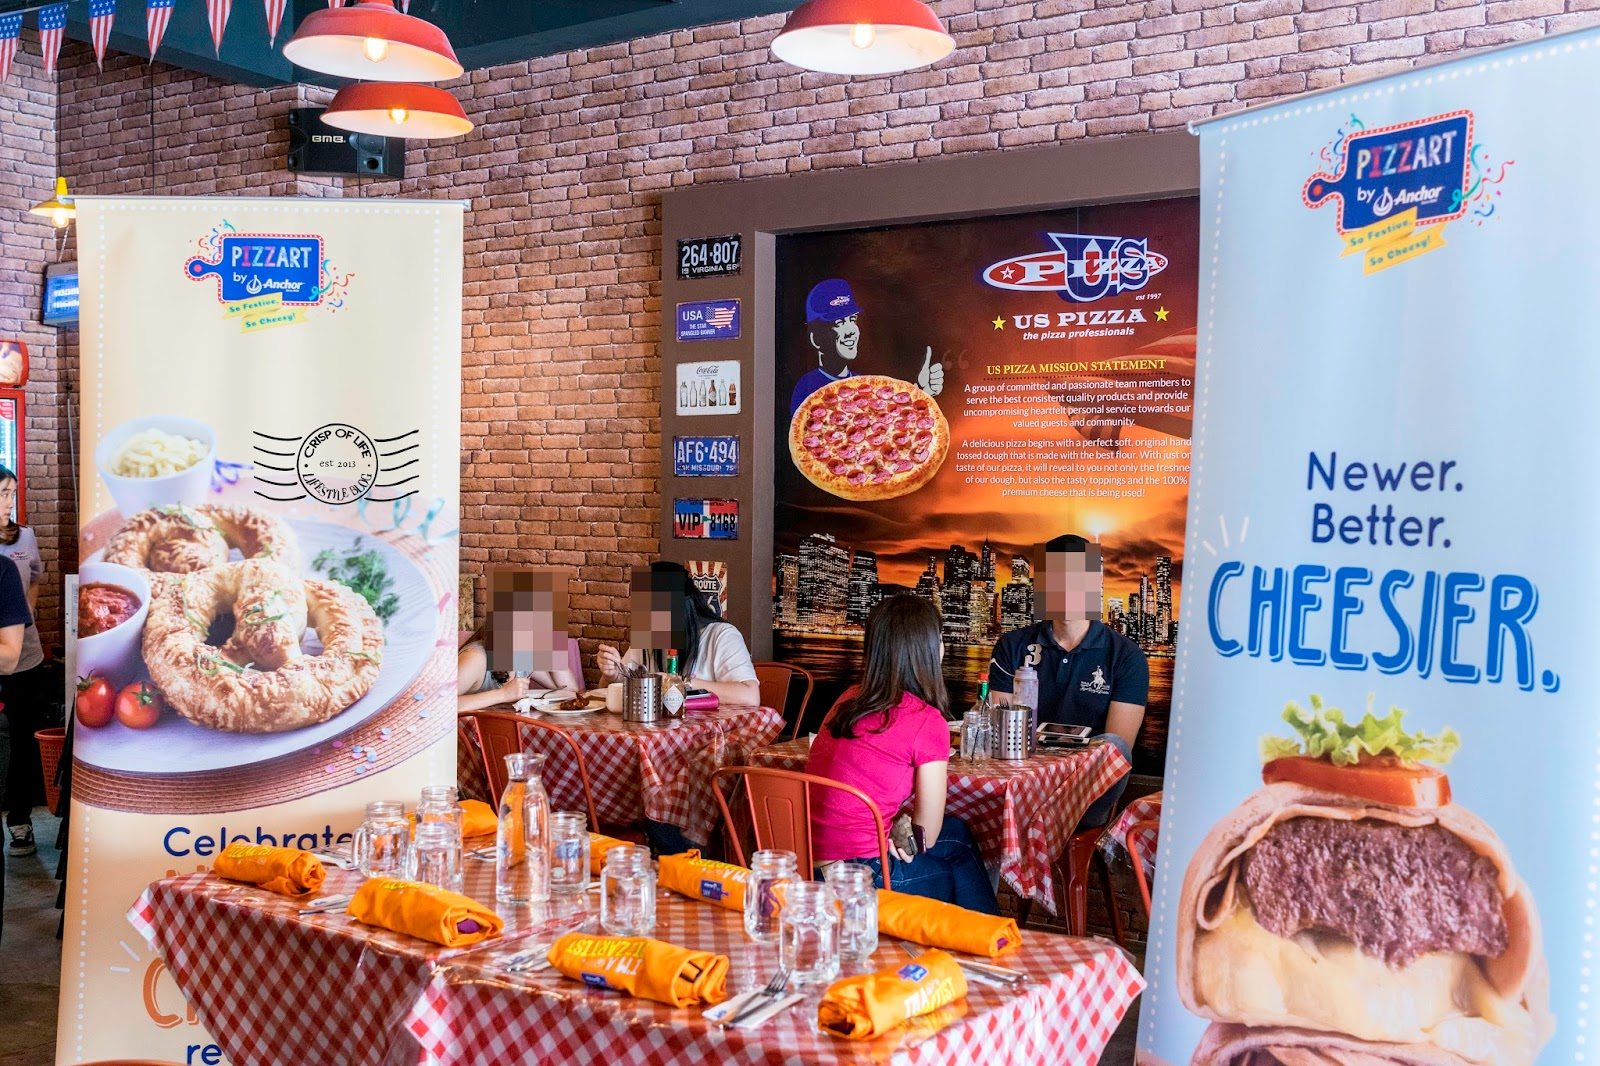 Anchor Food Professionals brings PizzArt2 Campaign to US Pizza Penang